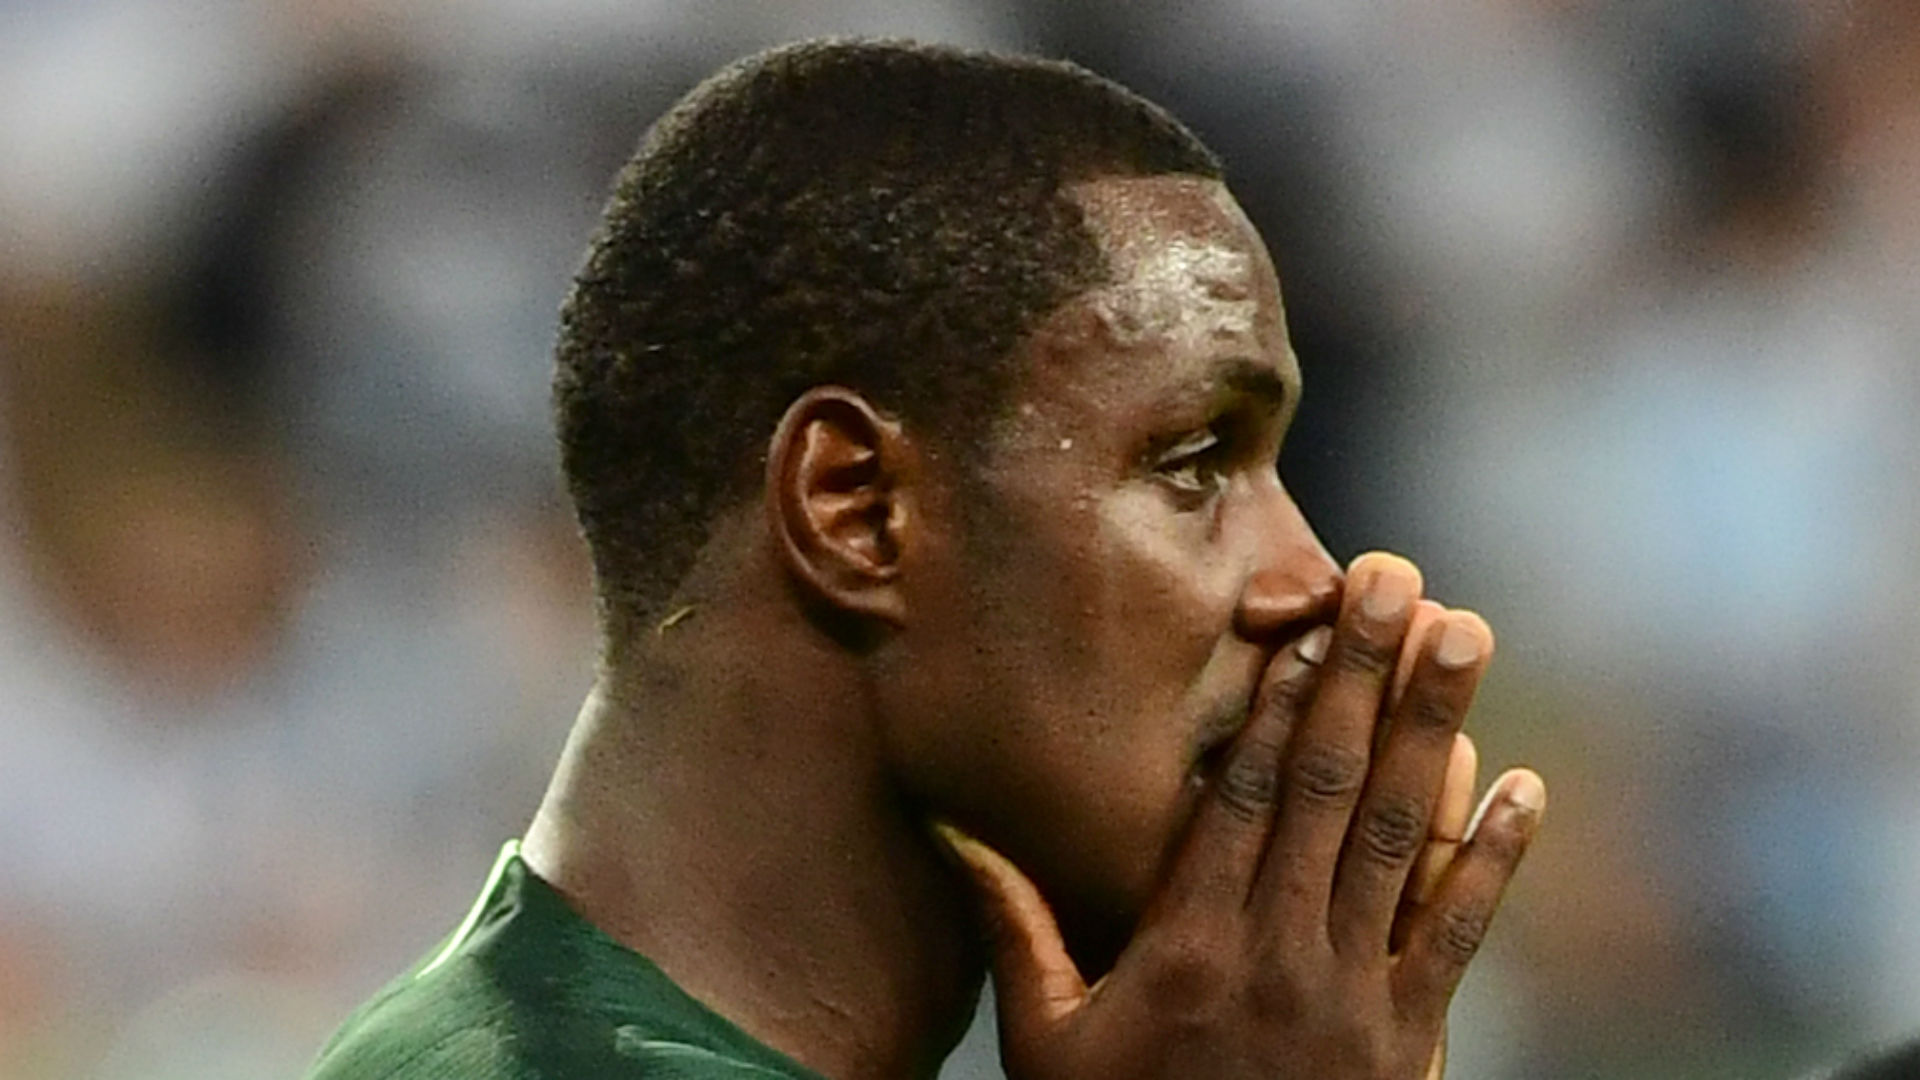 'Thank you' – Ex-Manchester United star Ighalo says farewell to Shanghai Shenhua with Al Shabab circling